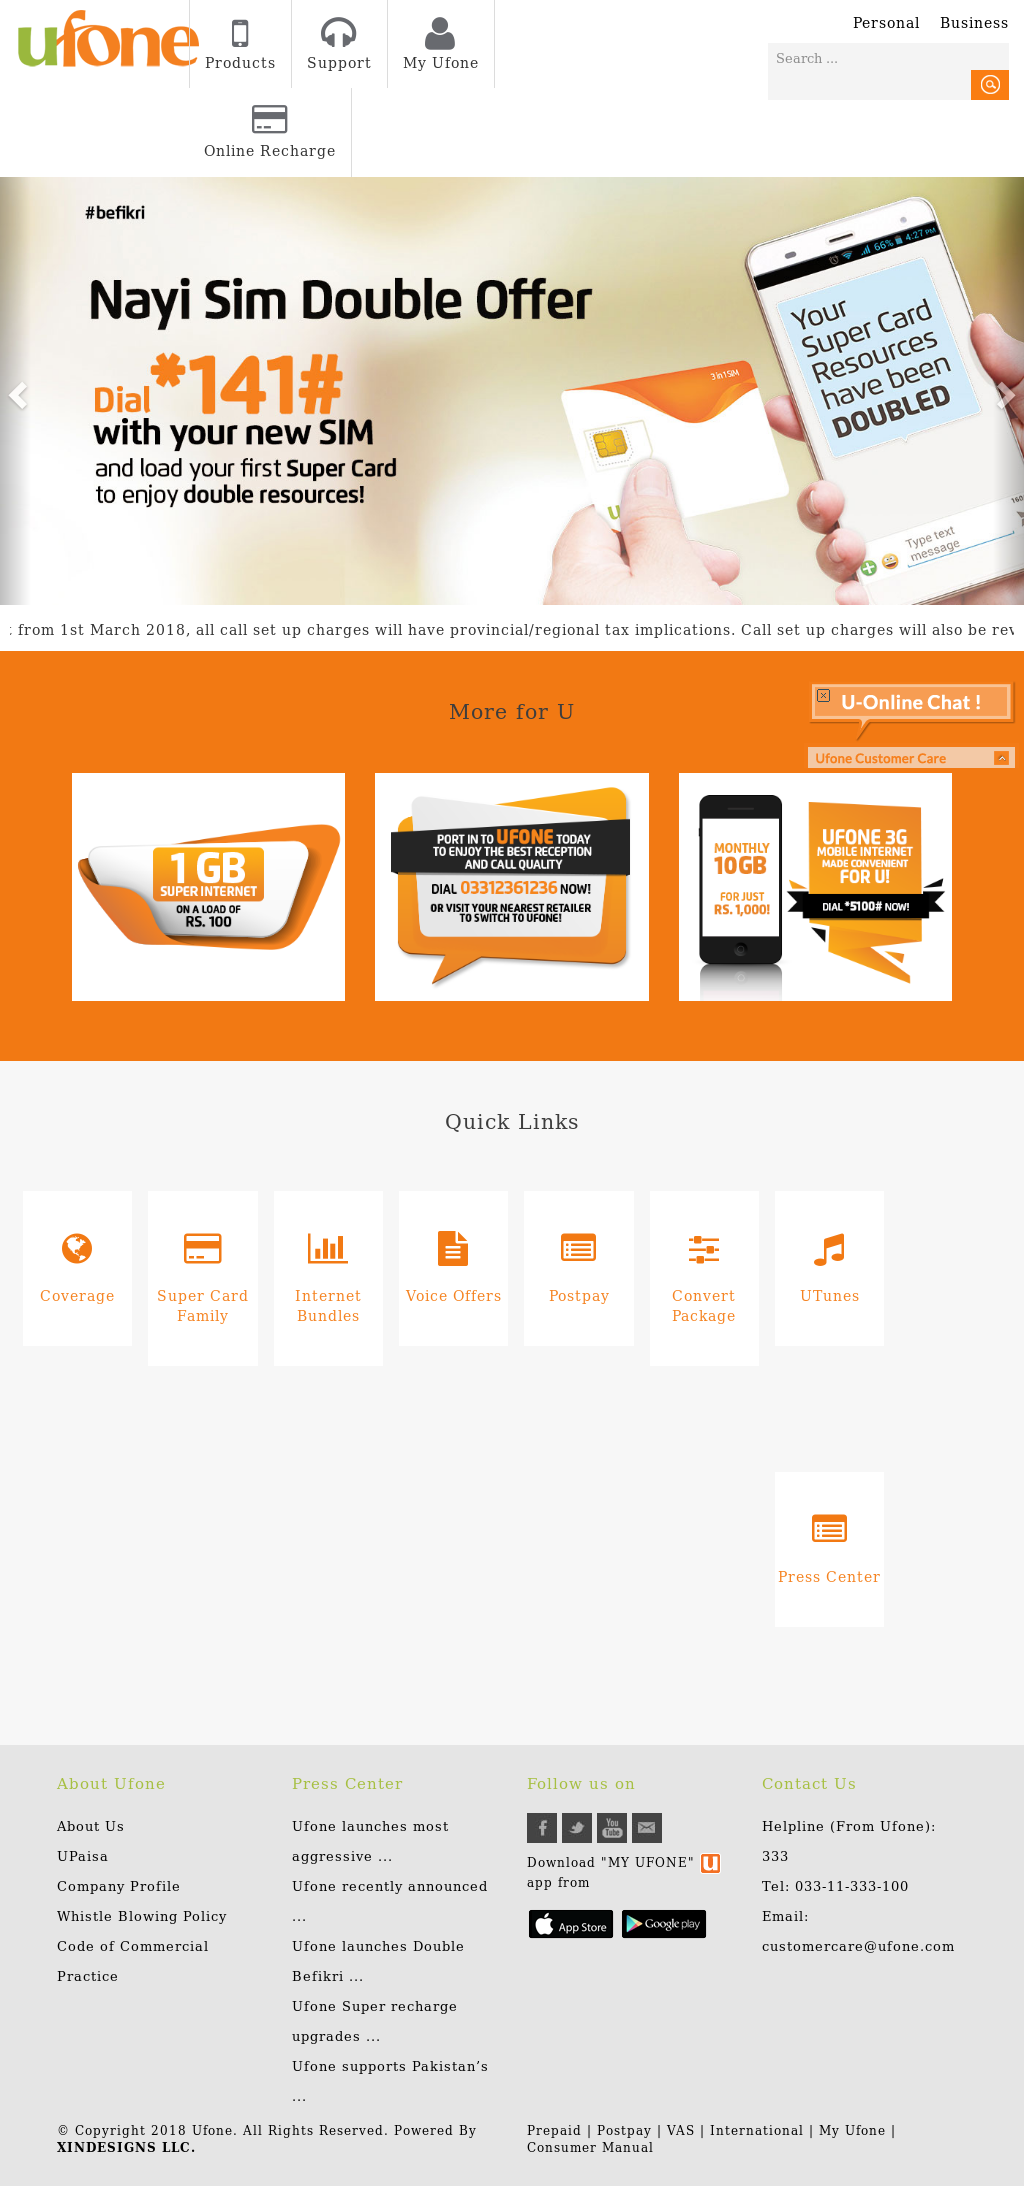 Ufone Competitors, Revenue and Employees - Owler Company Profile